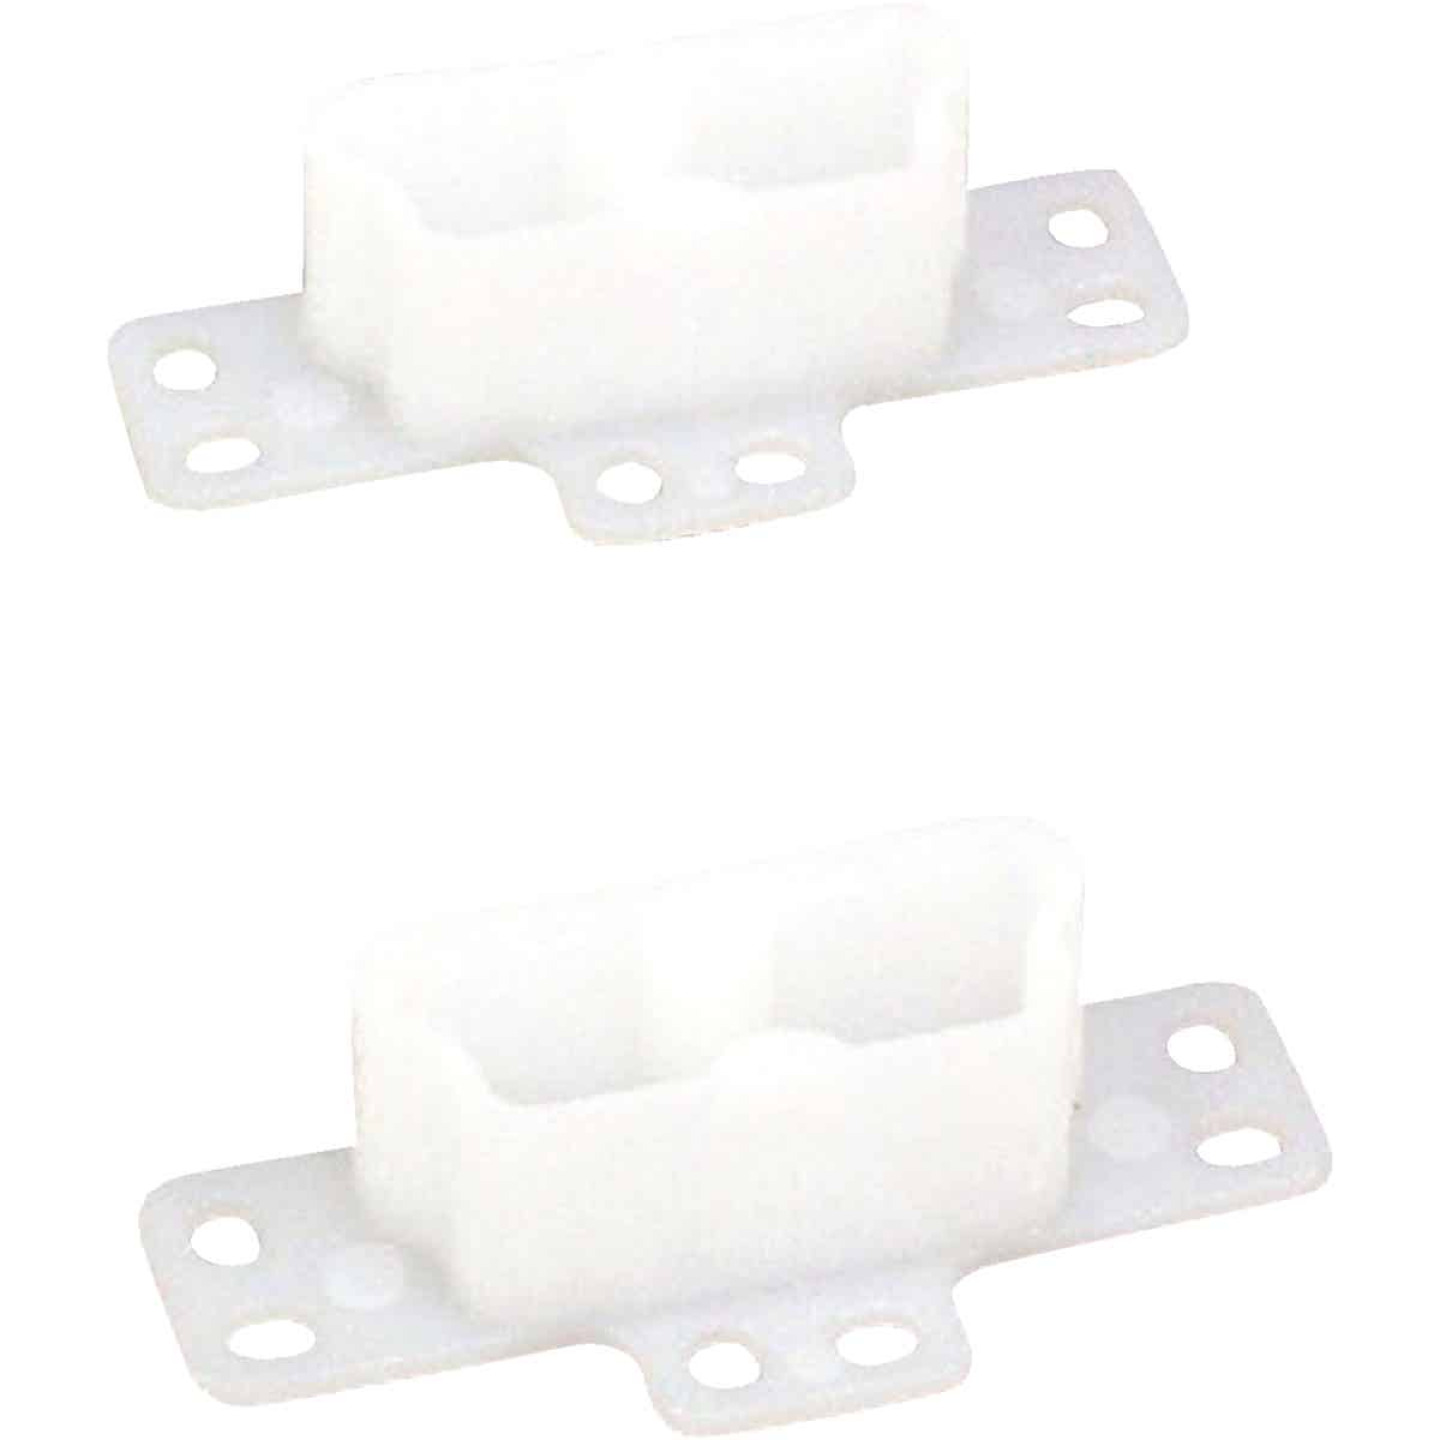 "United States Hardware 2-3/4"" Rear Plastic White Track Socket (2-Pack) Image 1"